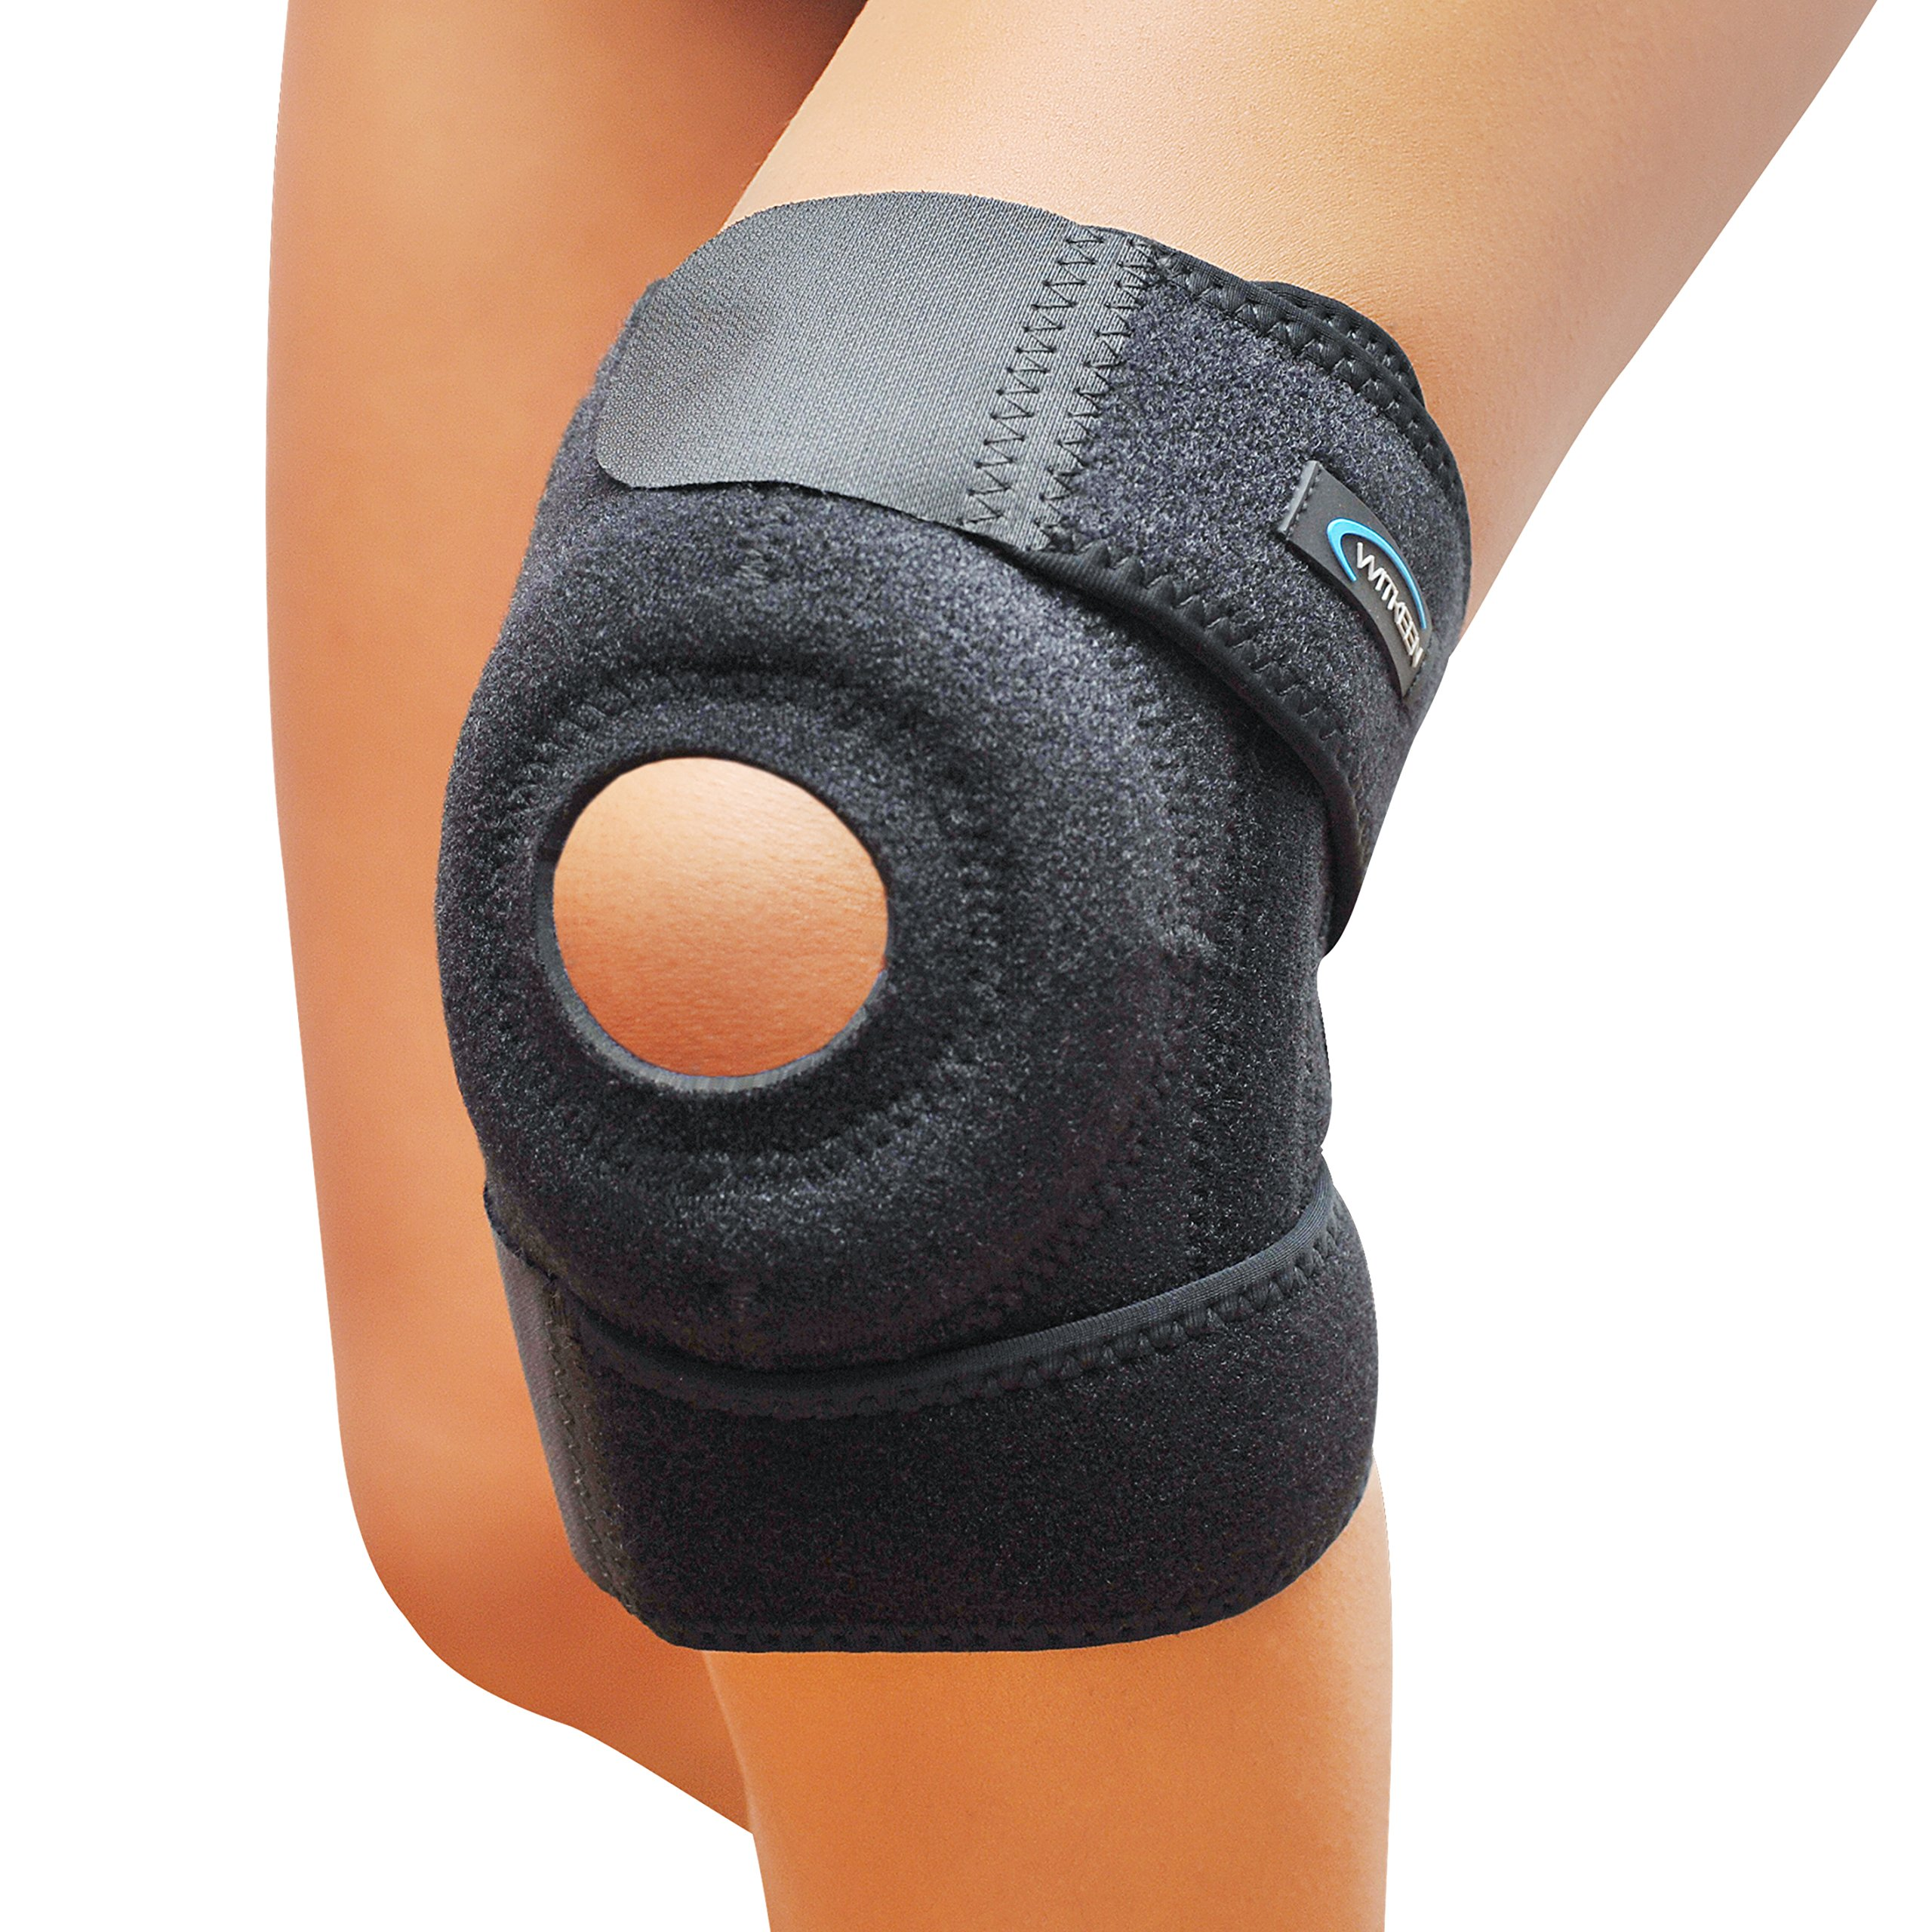 919142c16a Get Quotations · WITKEEN Knee Support Brace - Immediate Relief for  Arthritis, Tendonitis, Sports, Sprains -